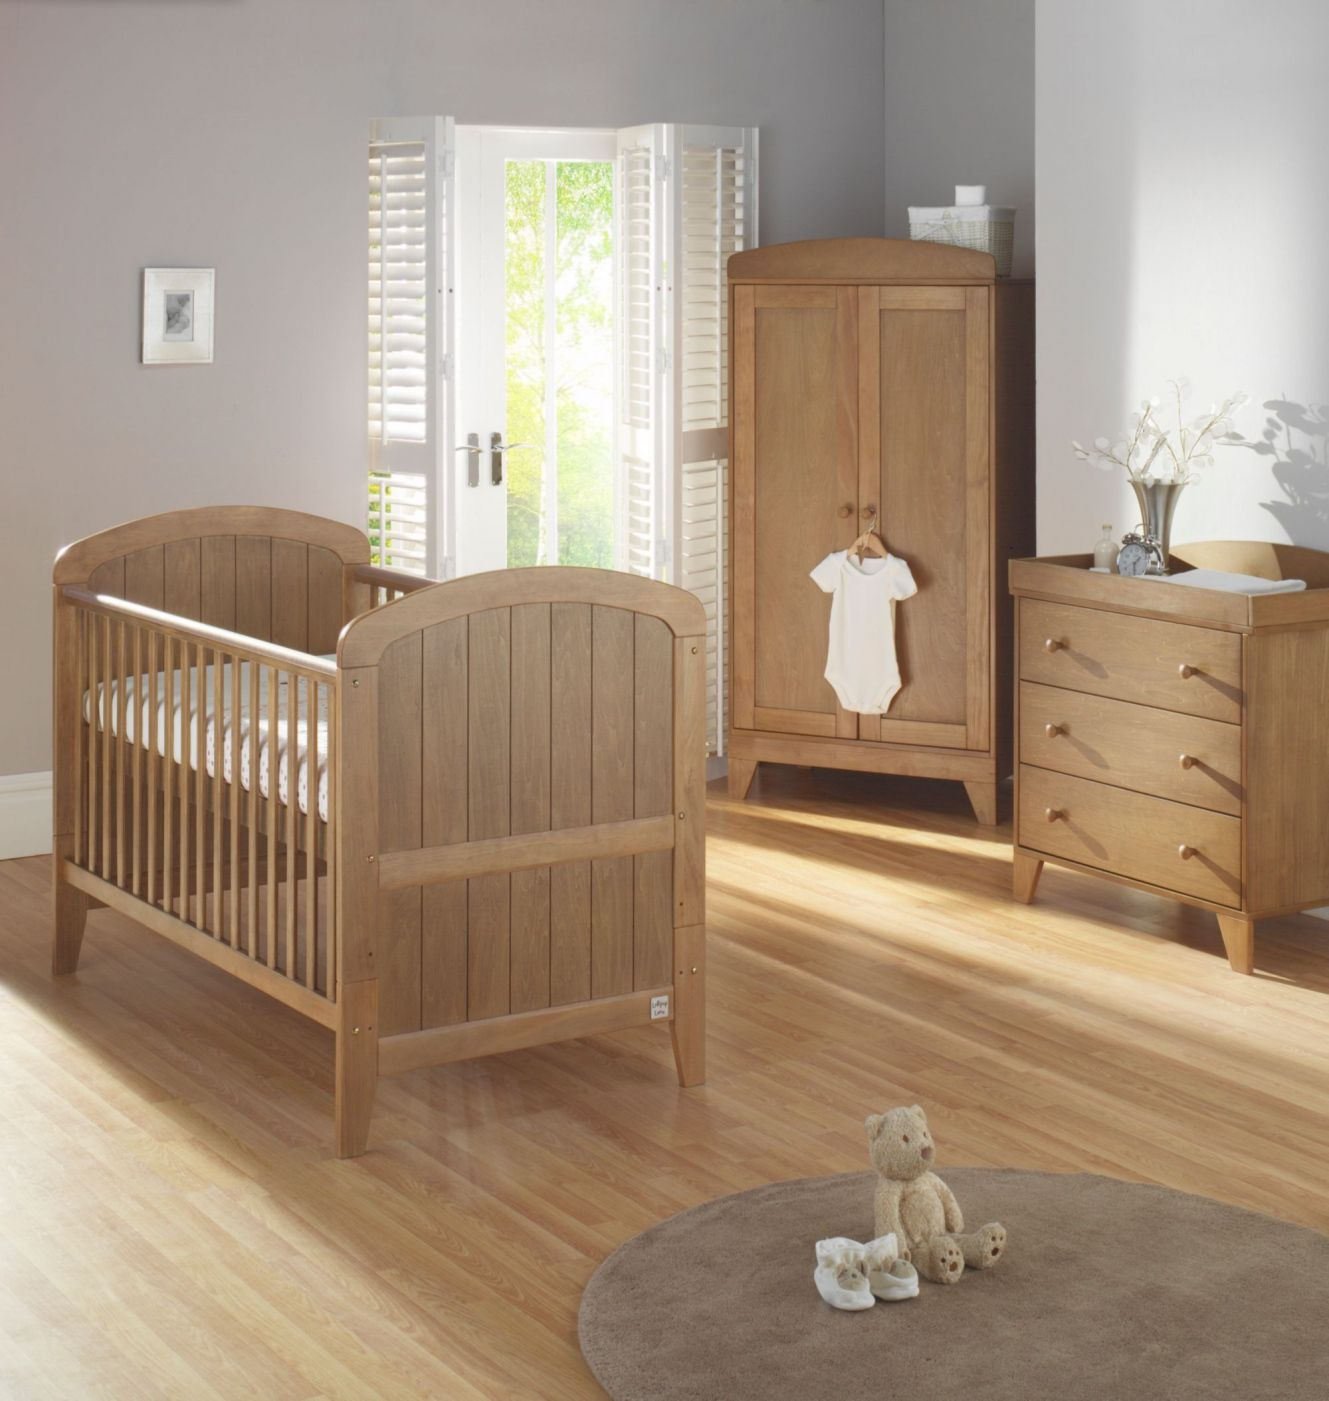 30 Oak Baby Furniture Interior Design Ideas Bedroom Check More At Http